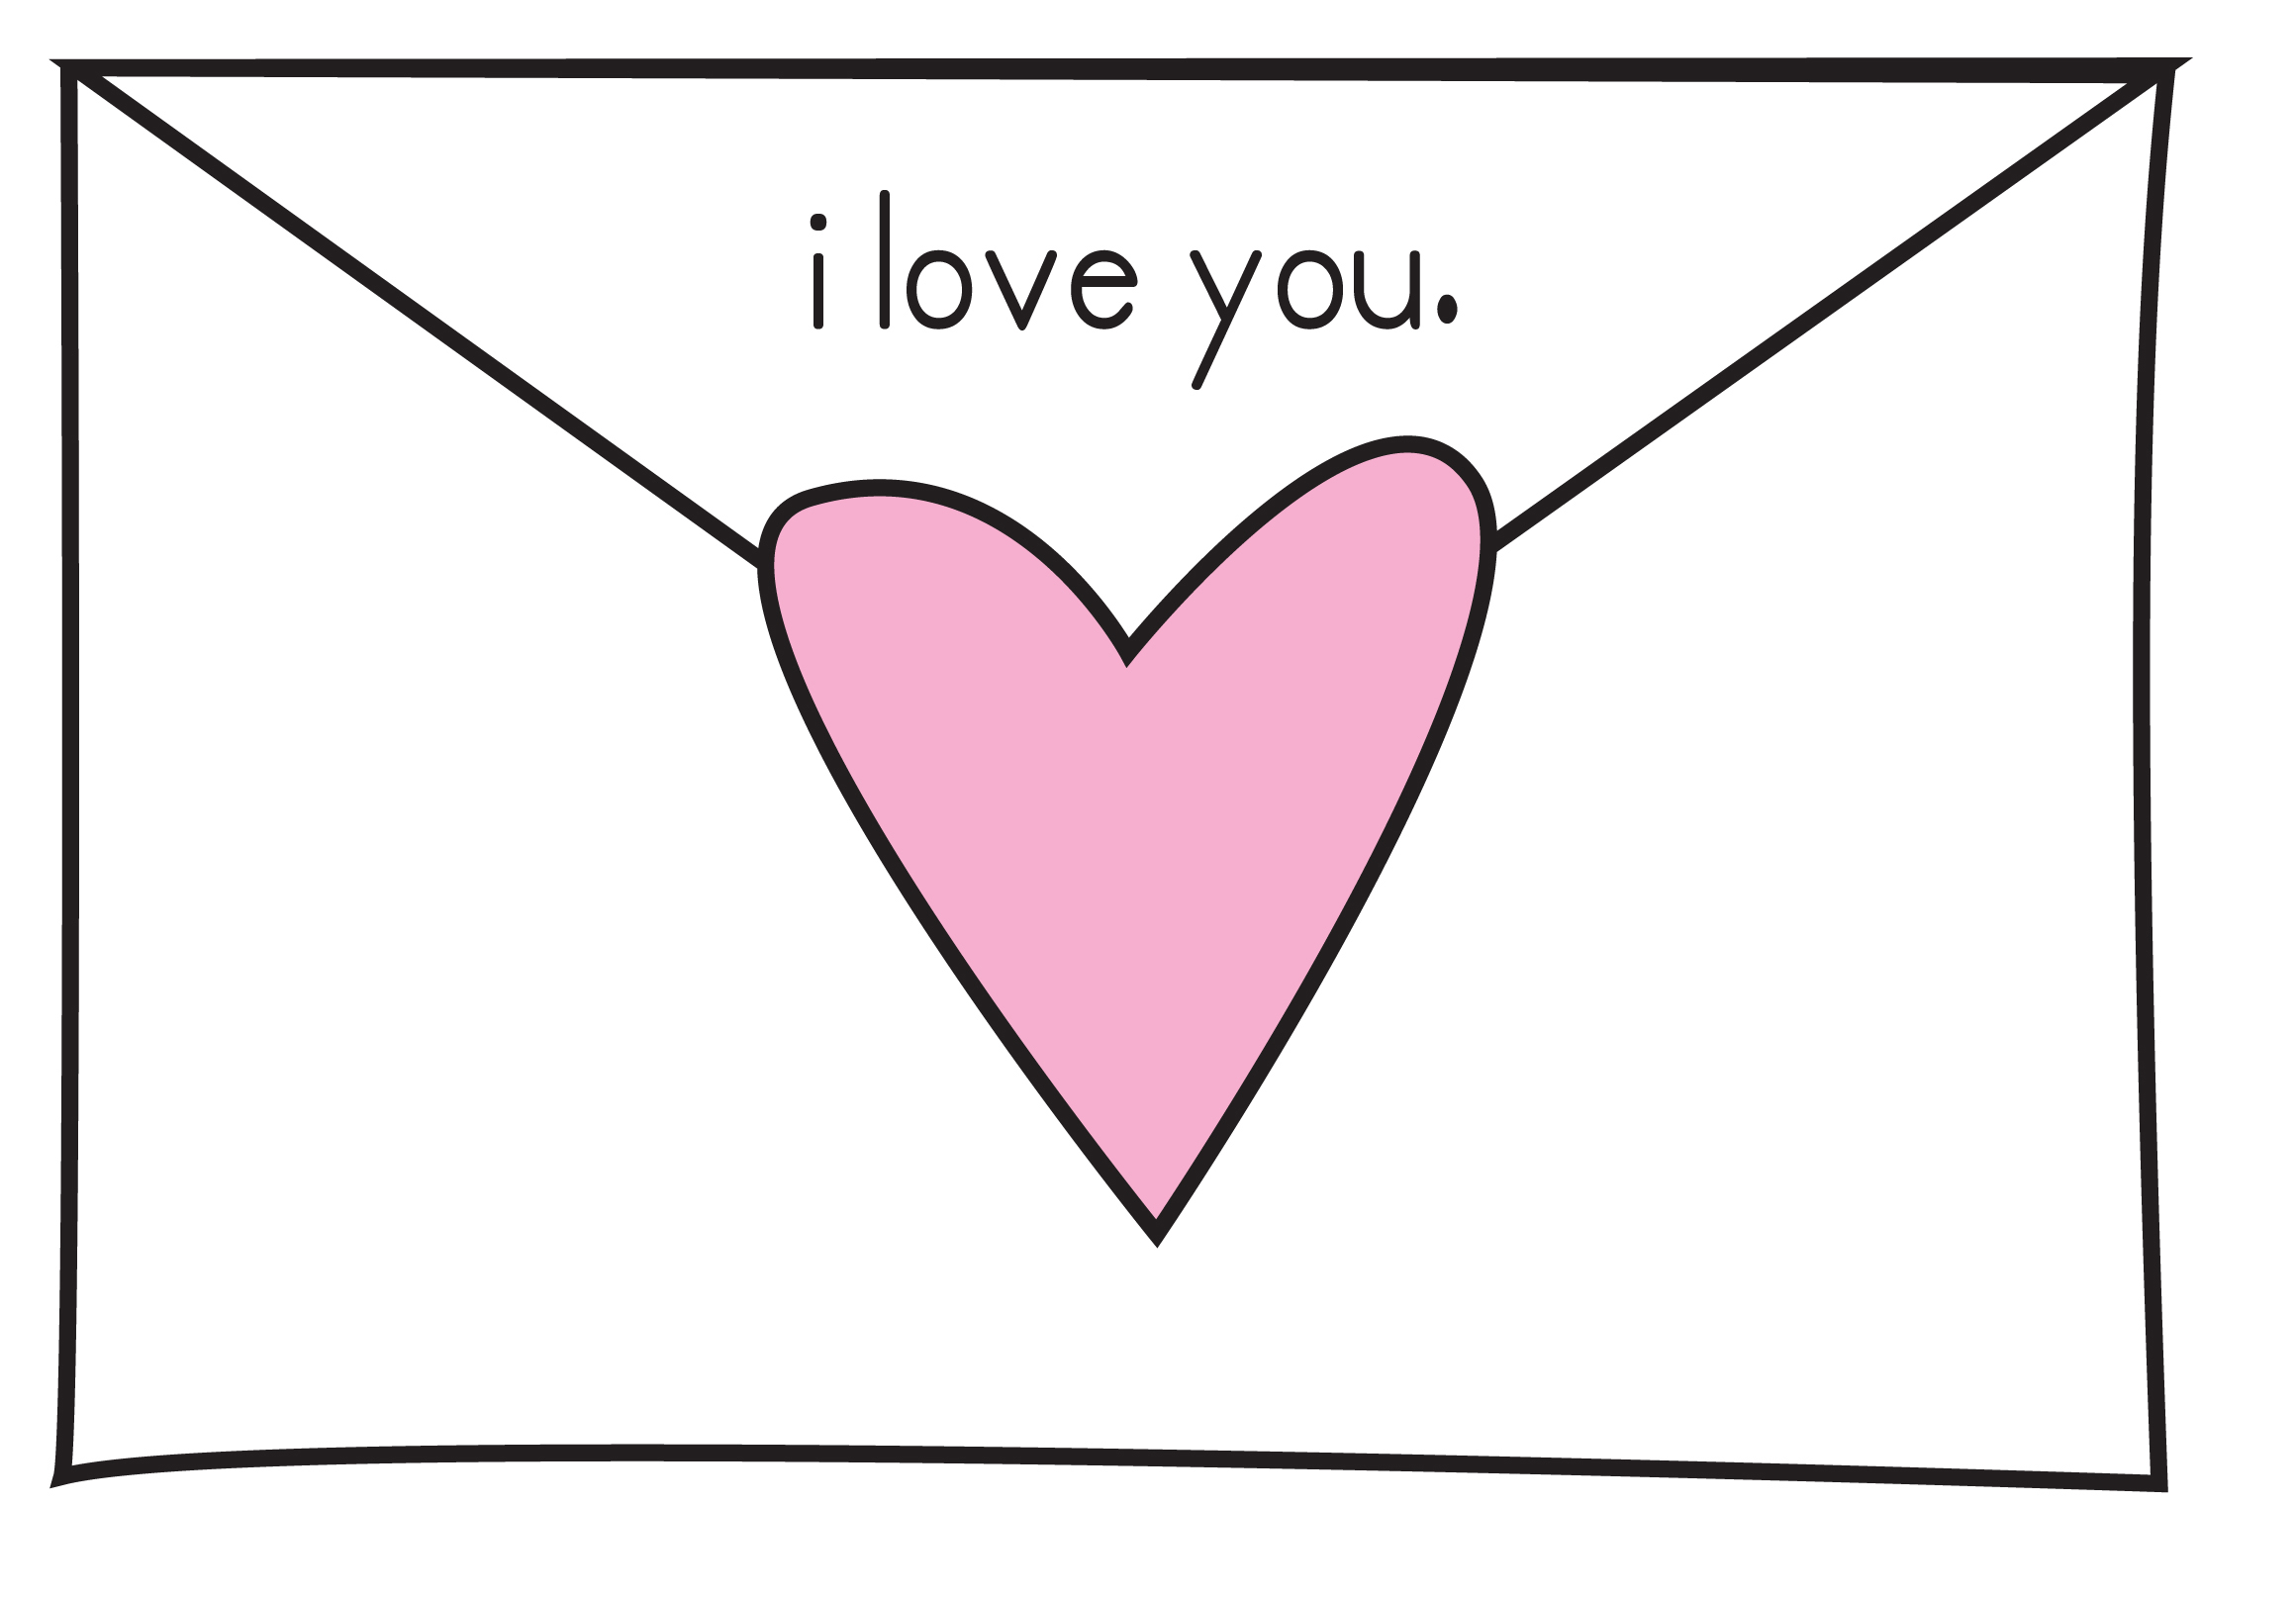 Love Note 2   Flickr - Photo Sharing!